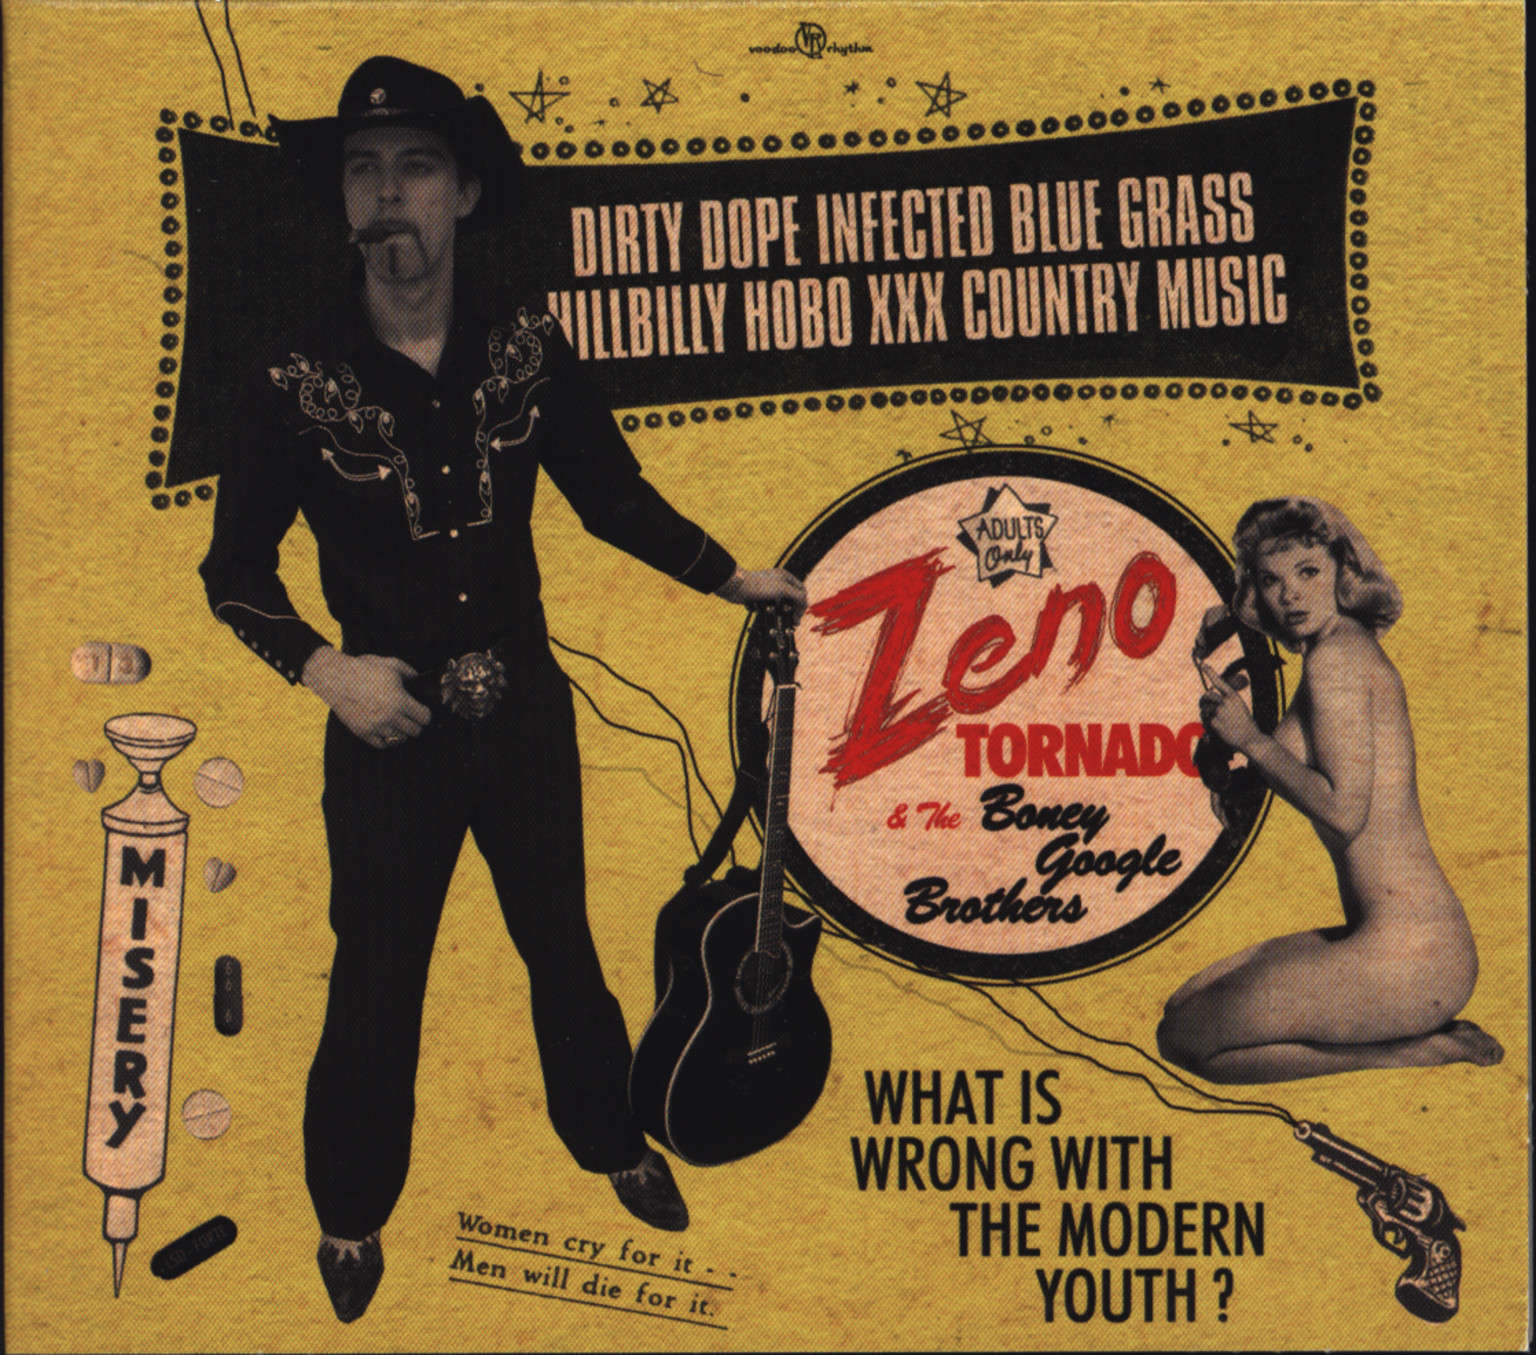 Zeno Tornado and the Boney Google Brothers: Dirty Dope Infected Blue Grass Hillbilly Hobo XXX Country Music, CD